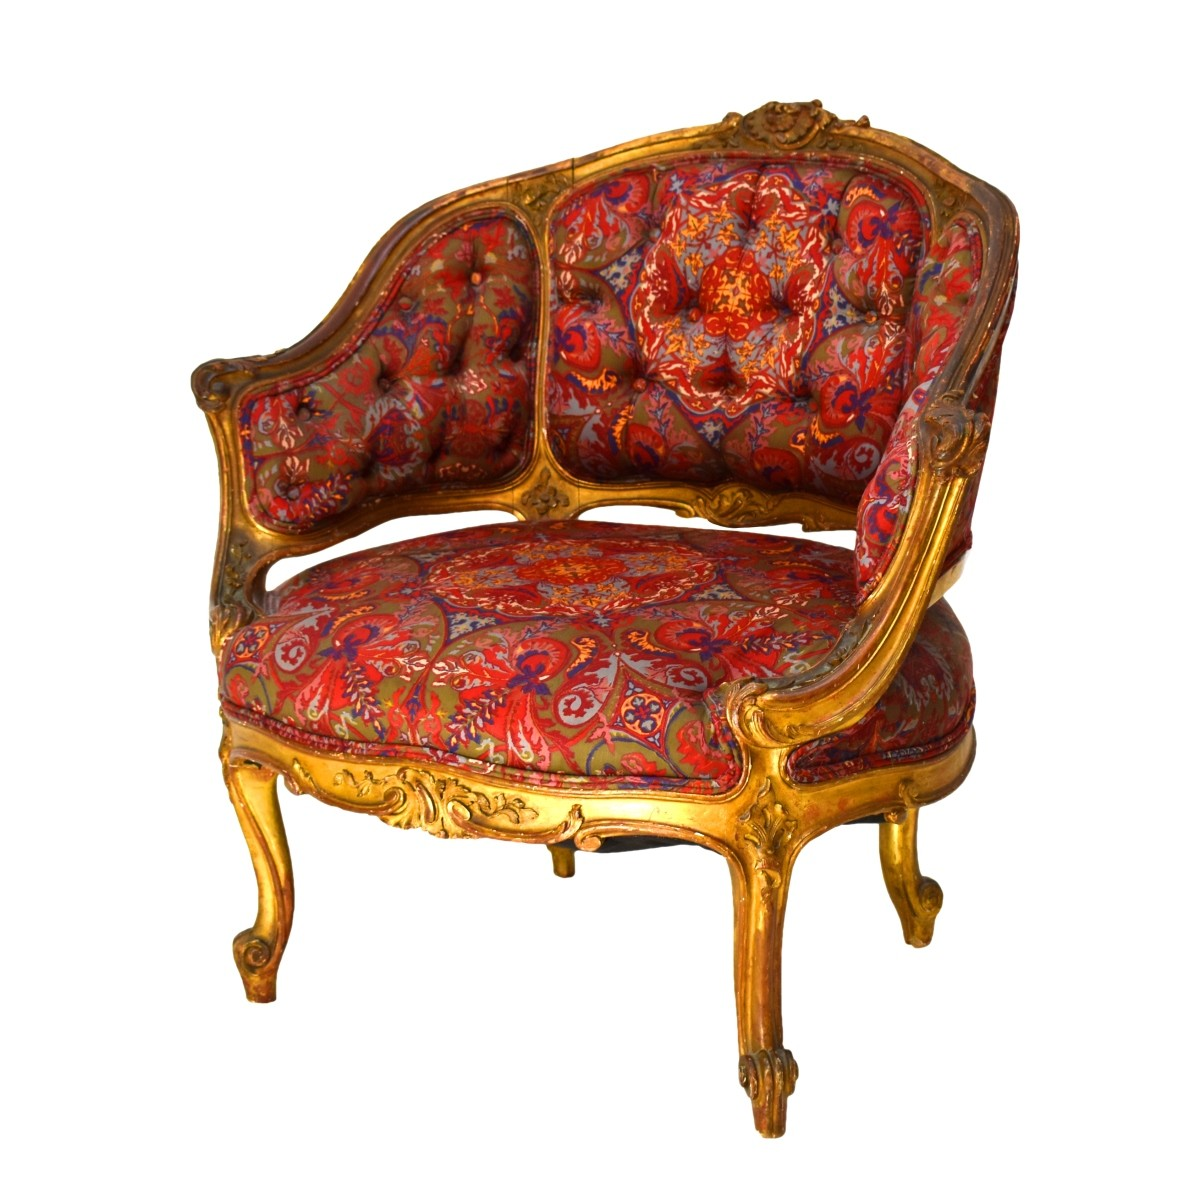 19th Century Louis XVI Style Bergere Chair